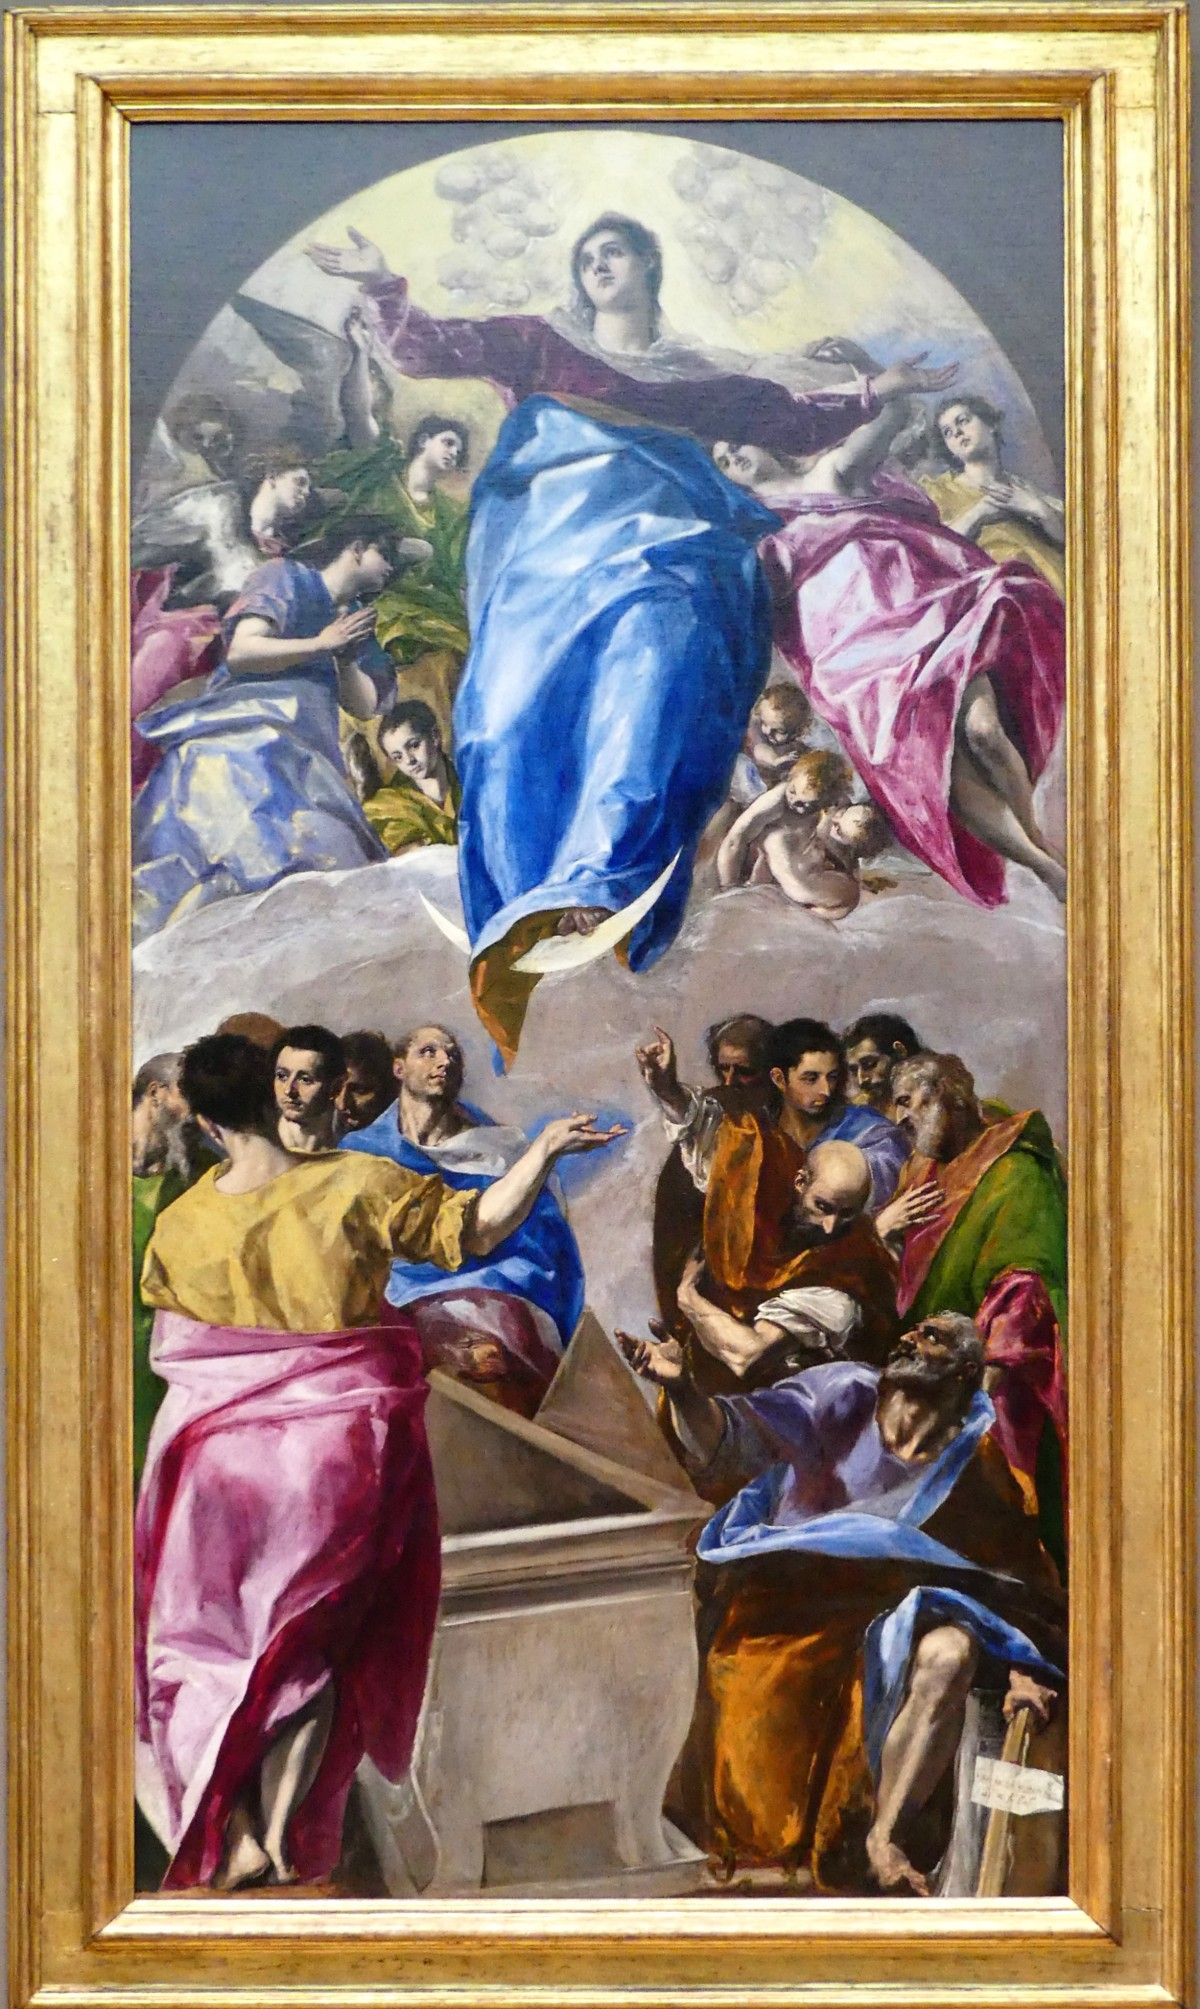 El Greco's The Assumption of the Virgin